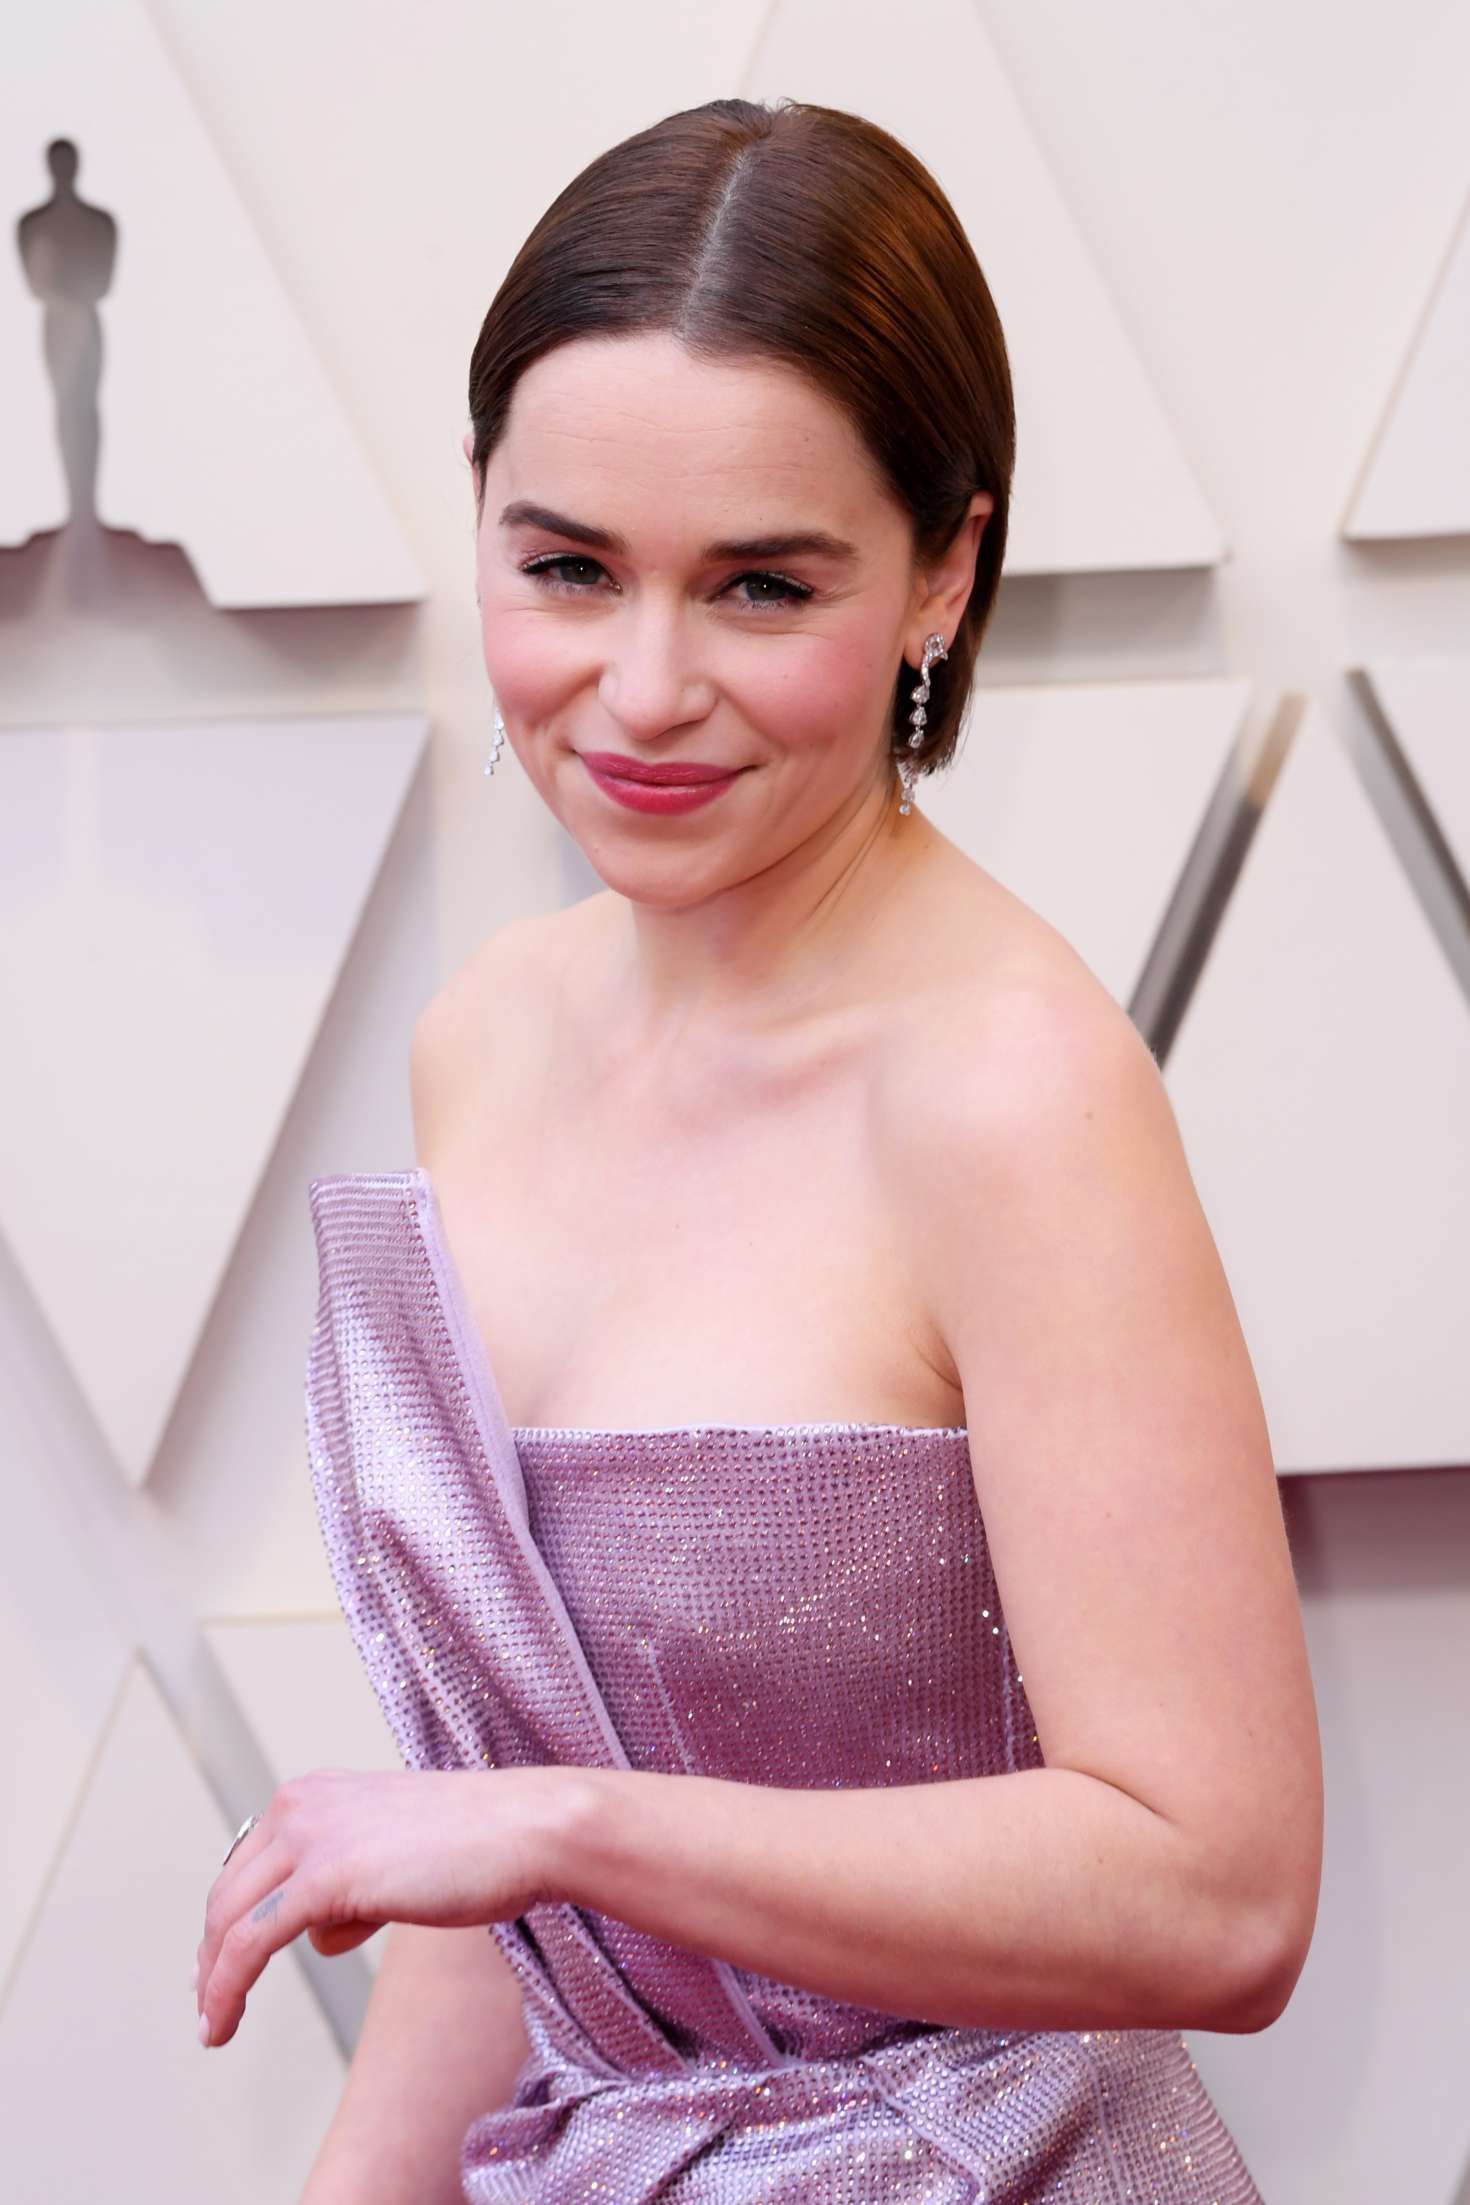 Emilia Clarke - celebrity at the Oscars in Los Angeles, 2019